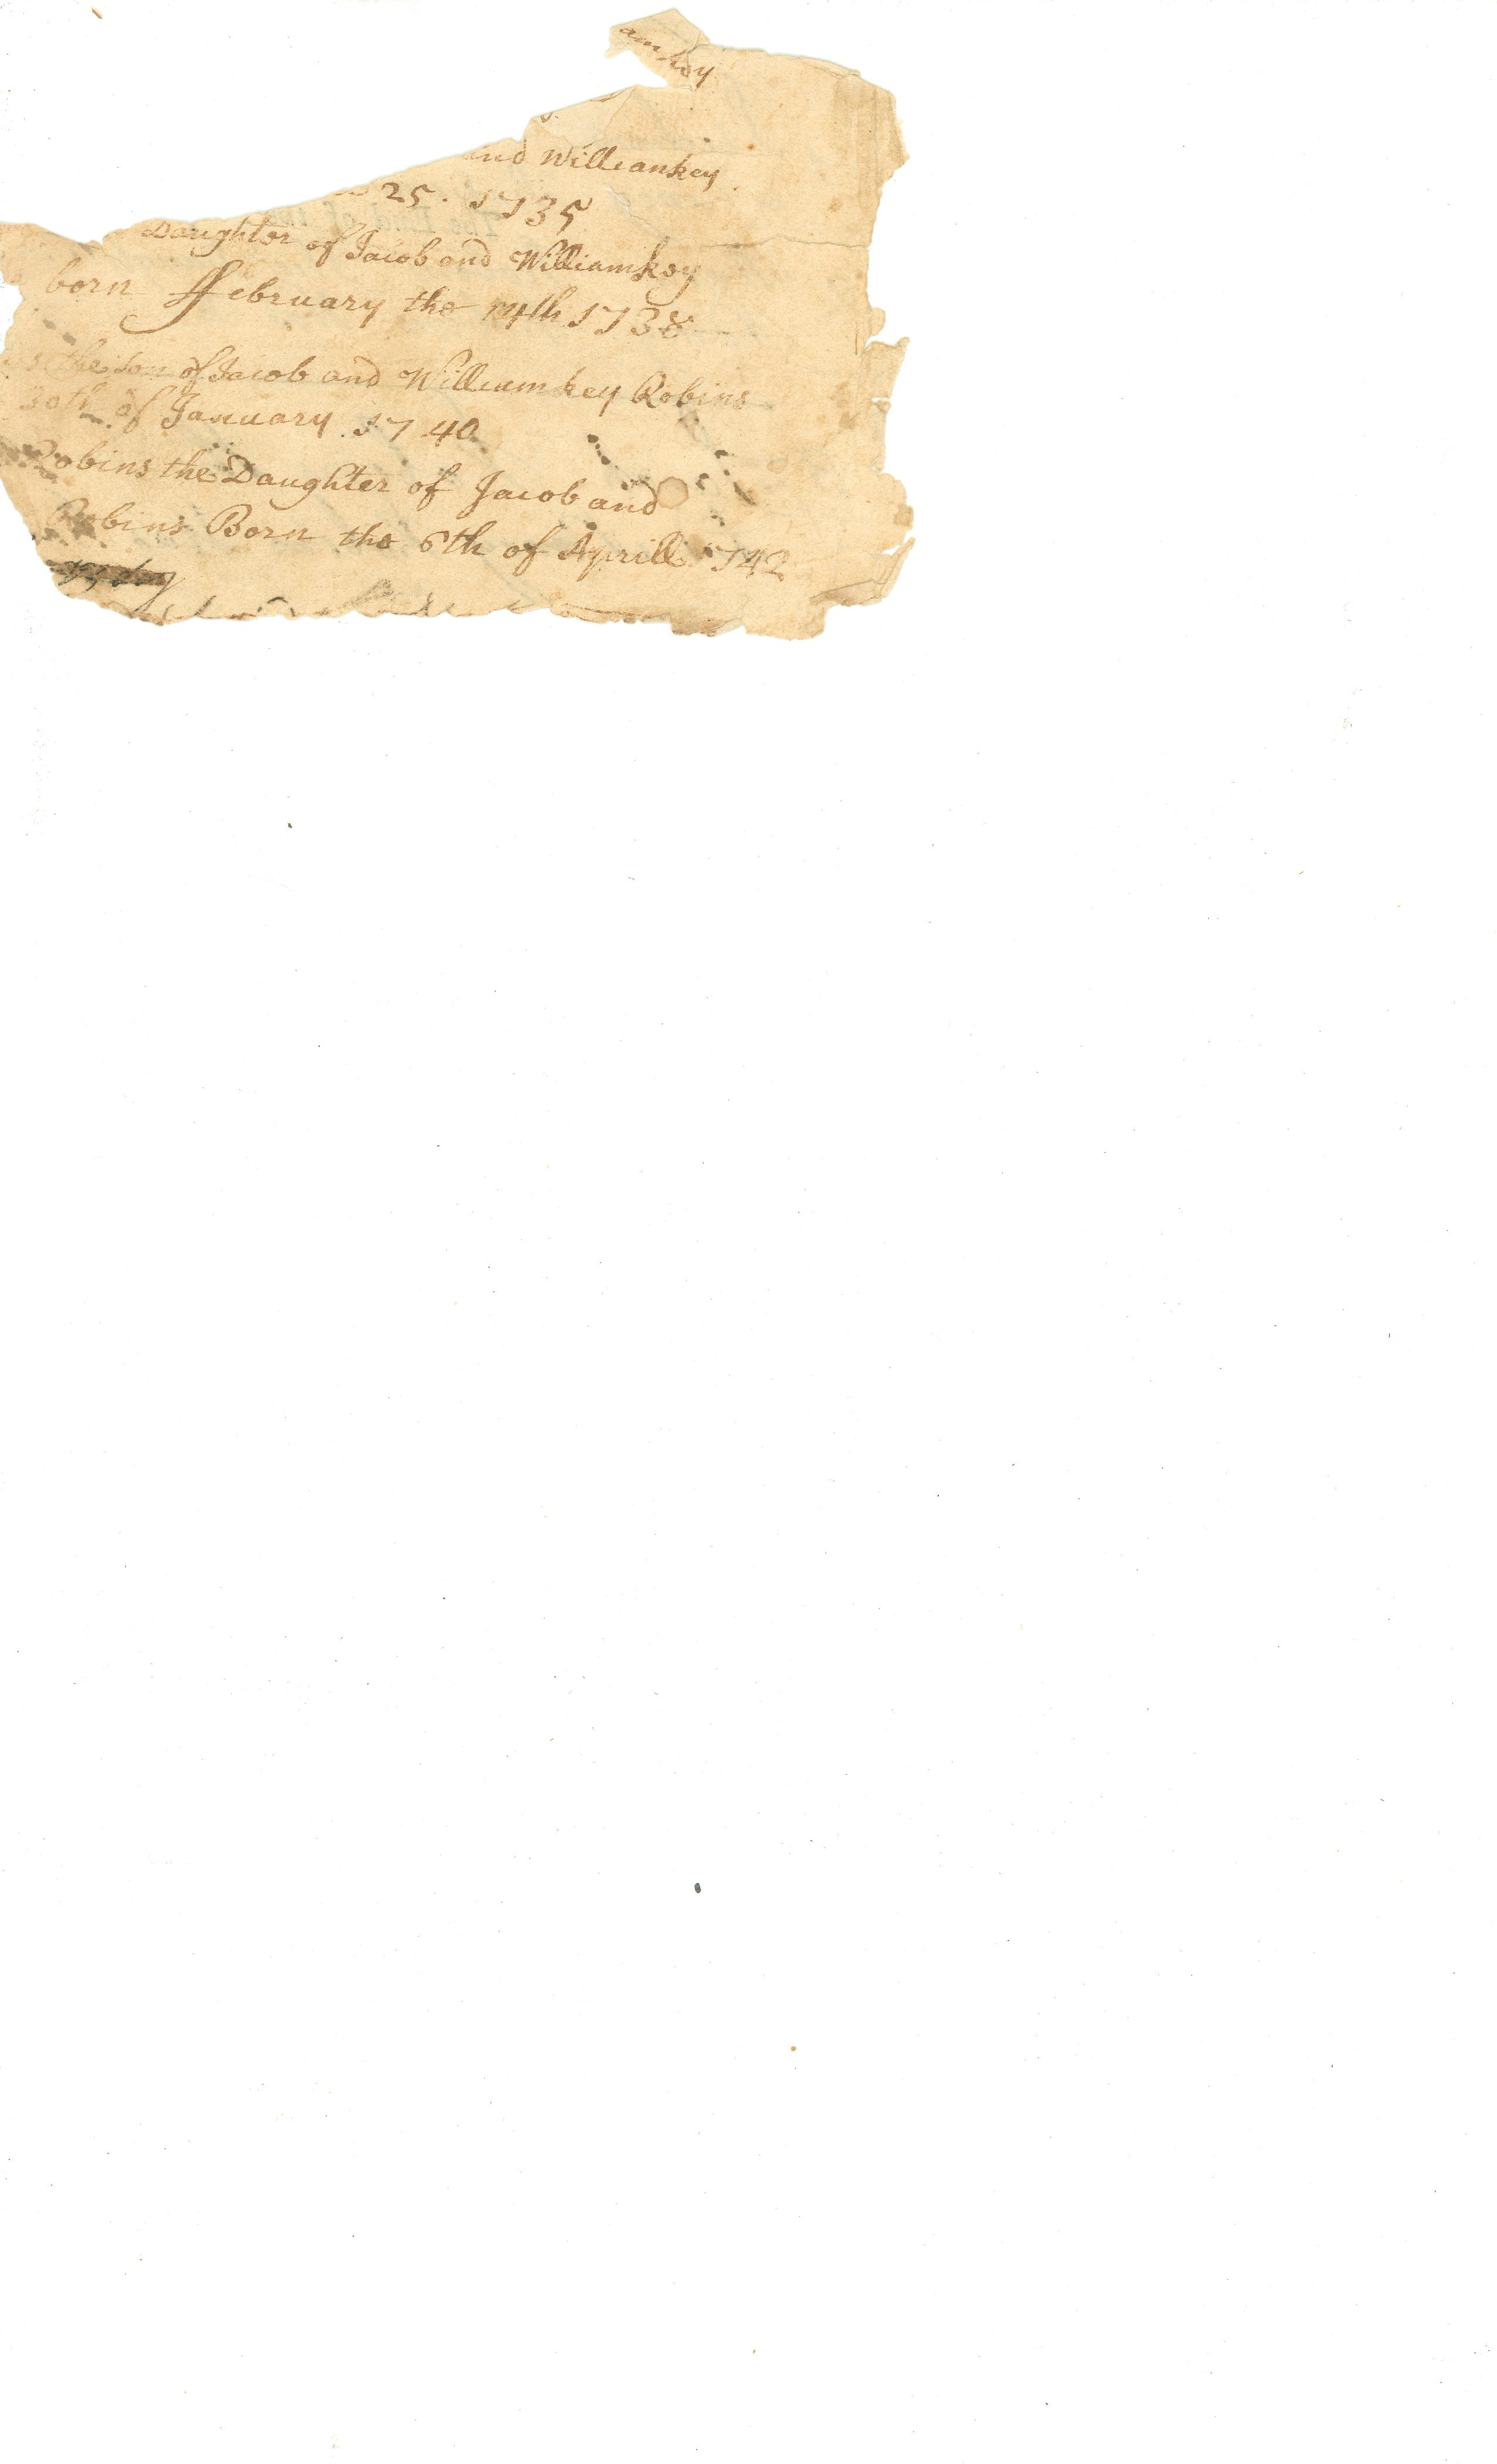 image of Robins Family Record, fragment 2